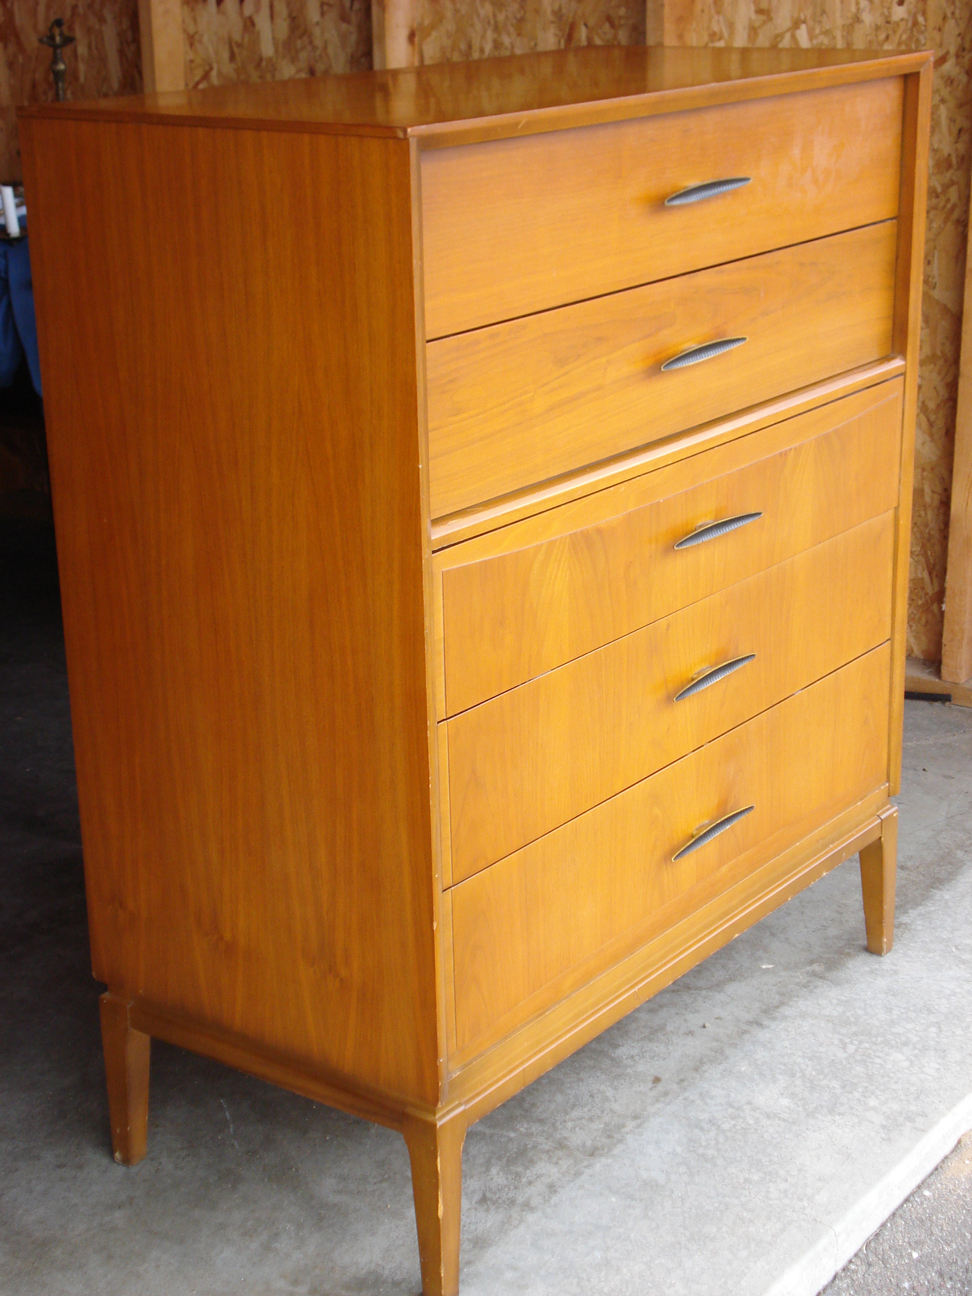 Unaugusta Entine highboy 5-drawer dresser